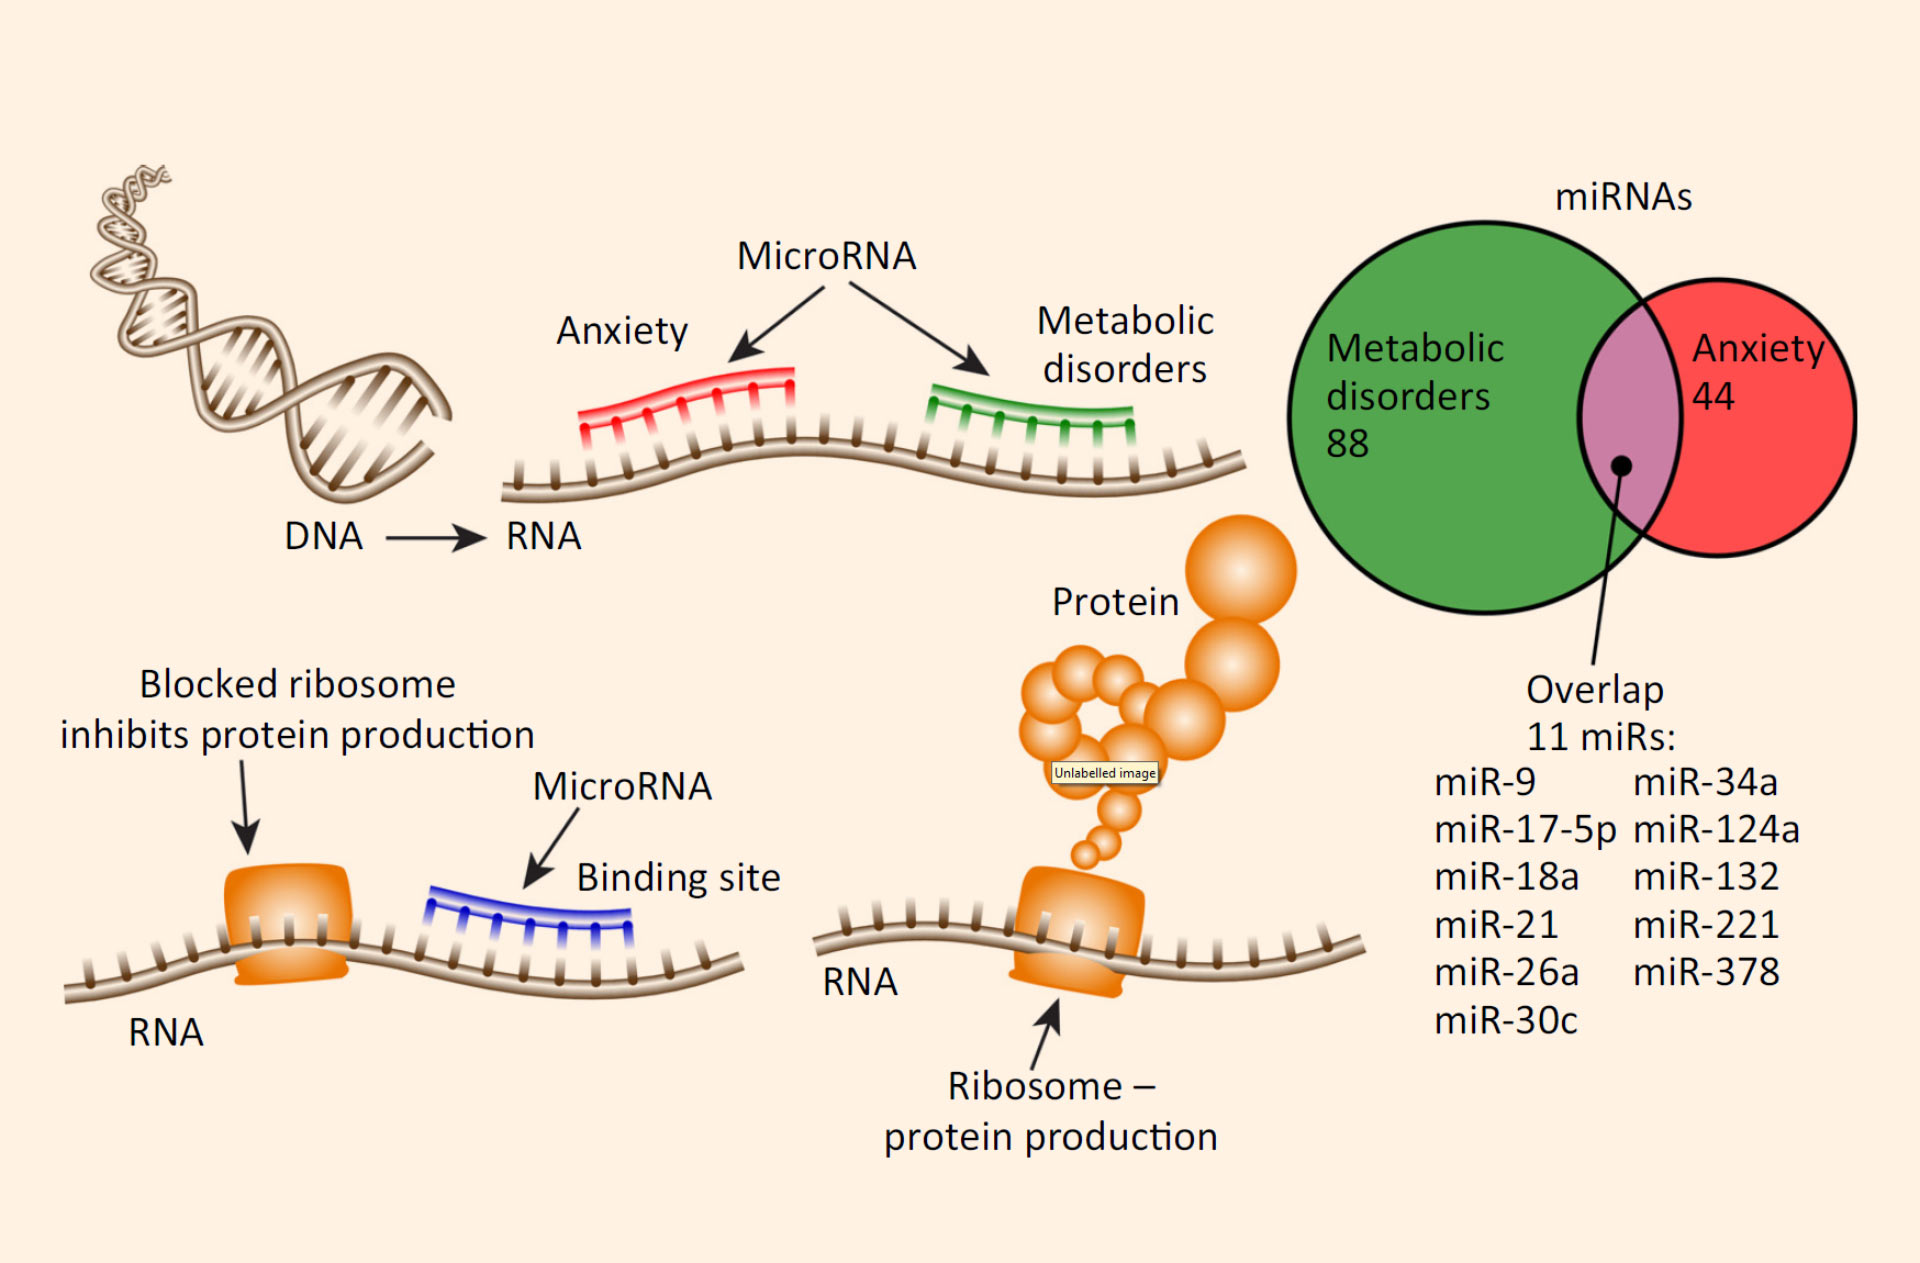 altered micrornas in anxiety and metabolic disorders  image credit: chanan  meydan et al,